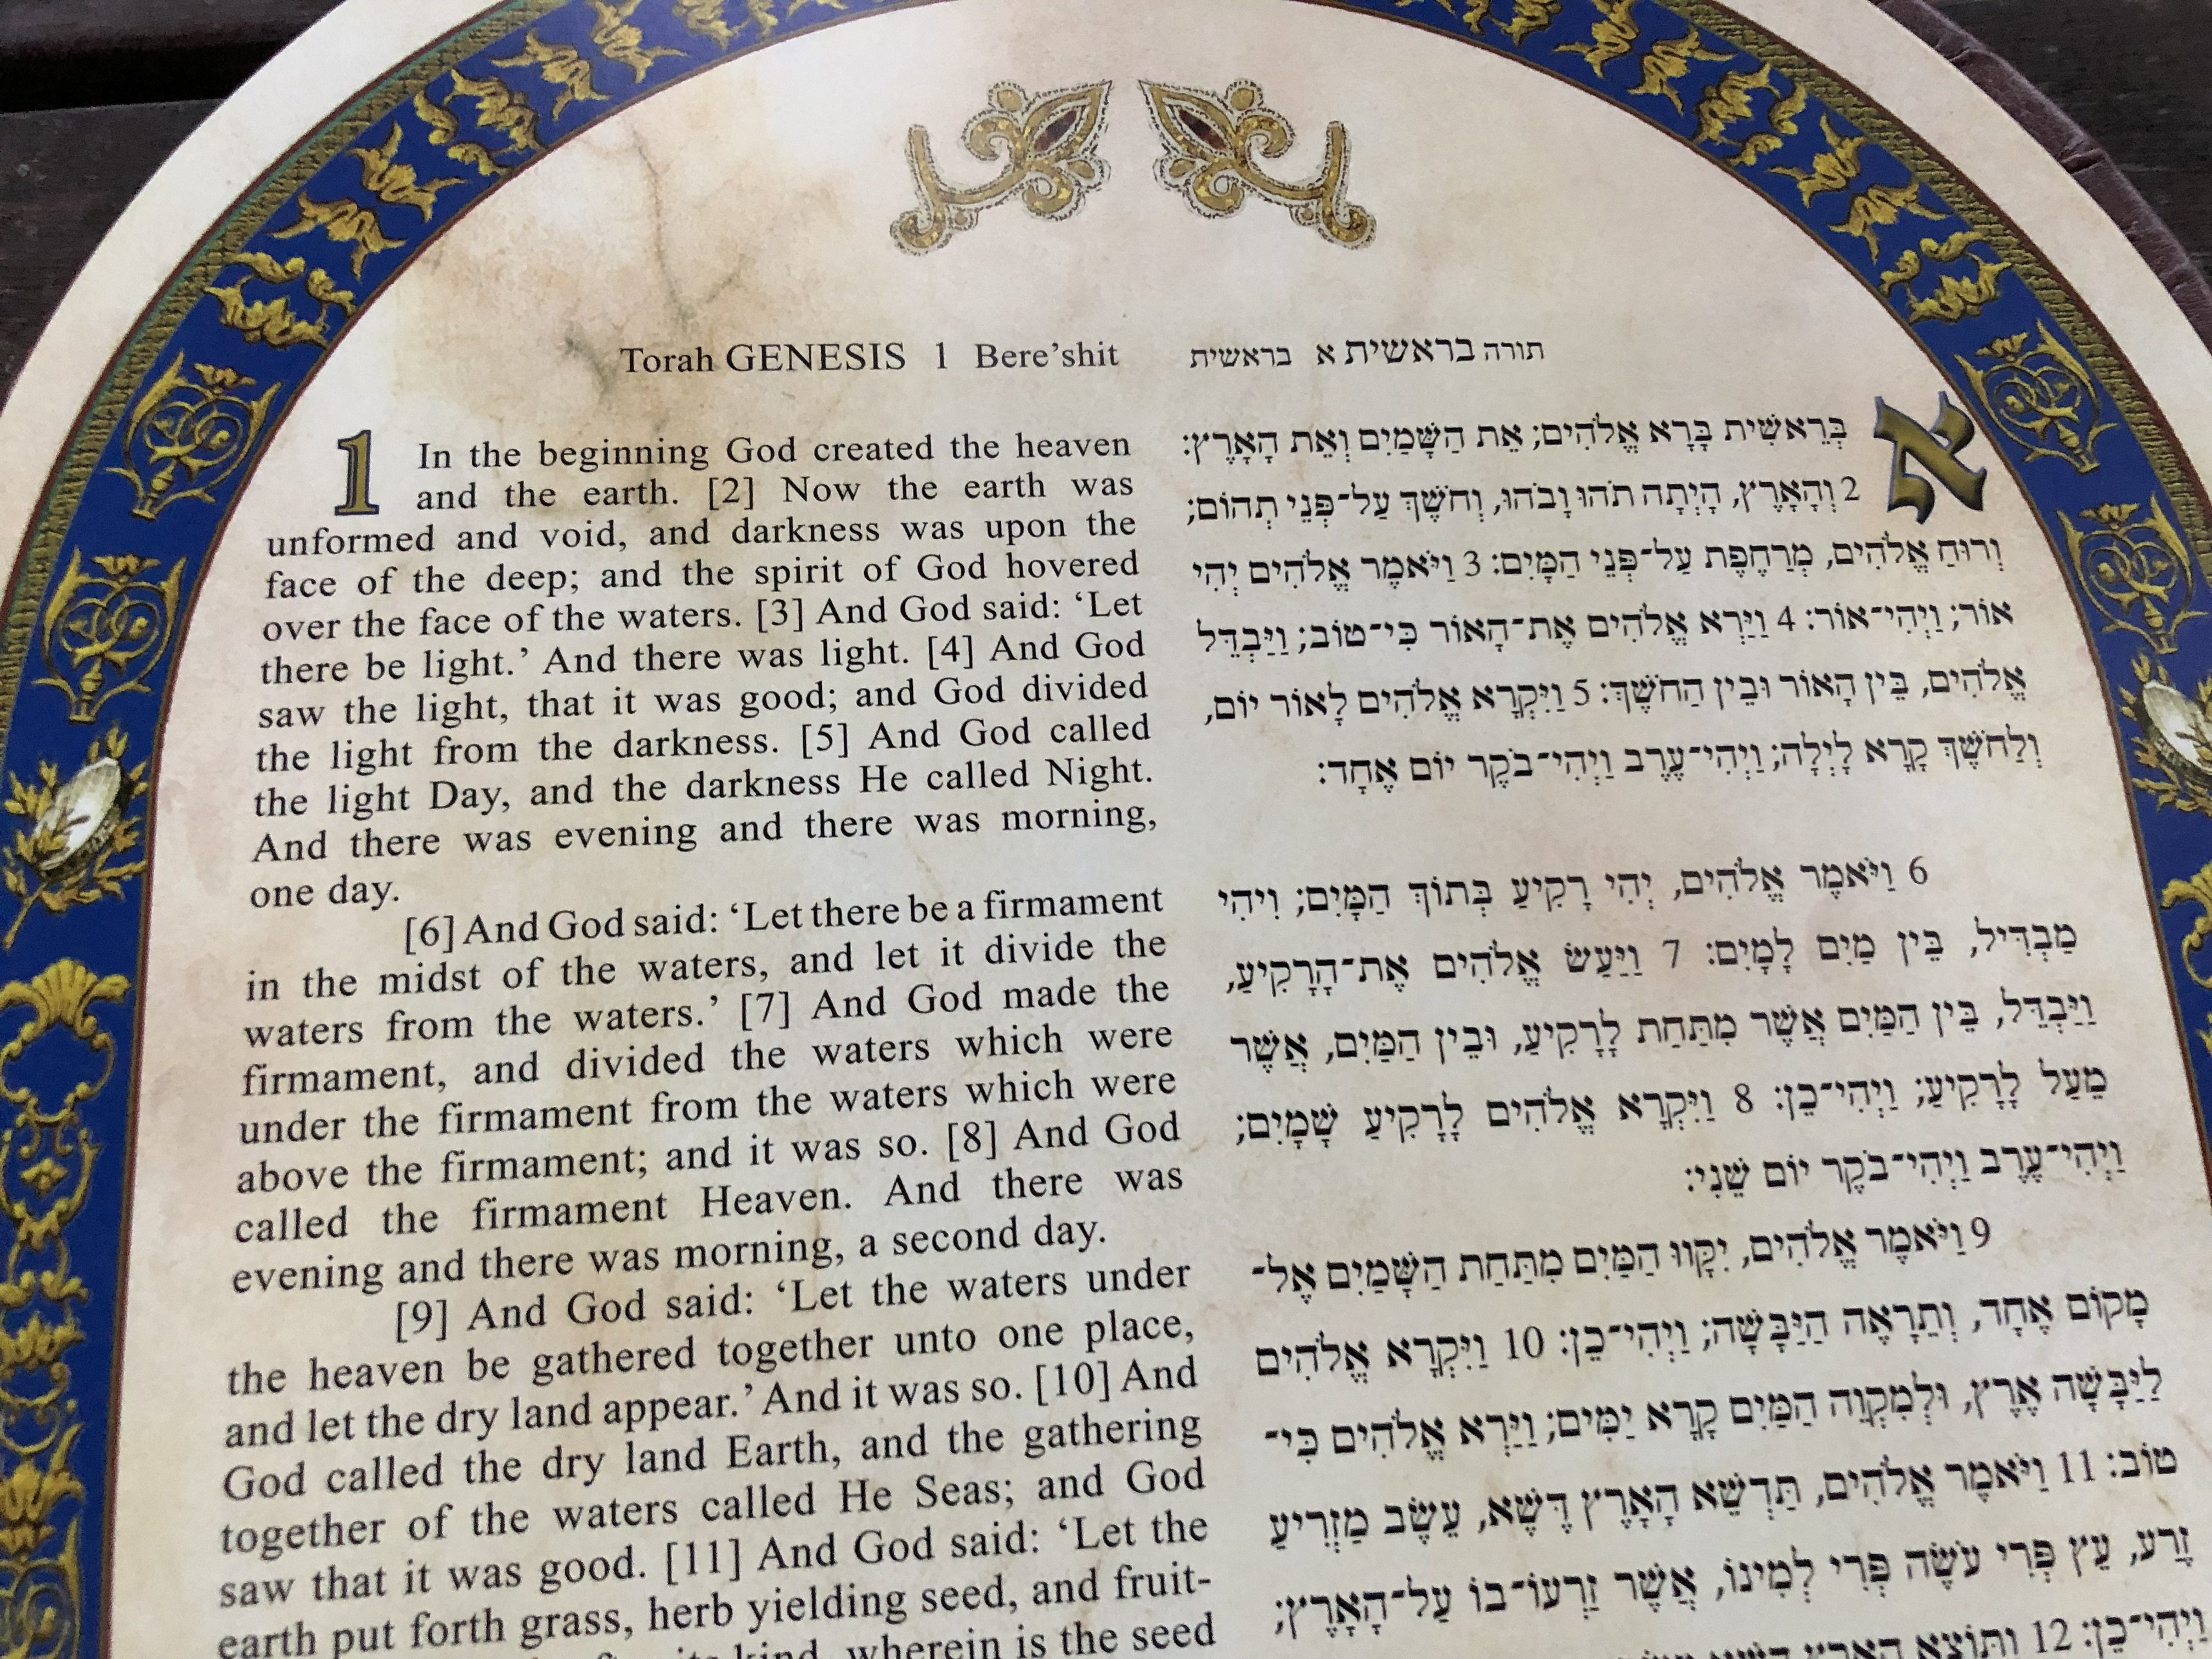 torah-holy-land-edition-the-five-books-of-moses-in-hebrew-and-english-zvi-zachor-2nd-printing-2016-14-.jpg